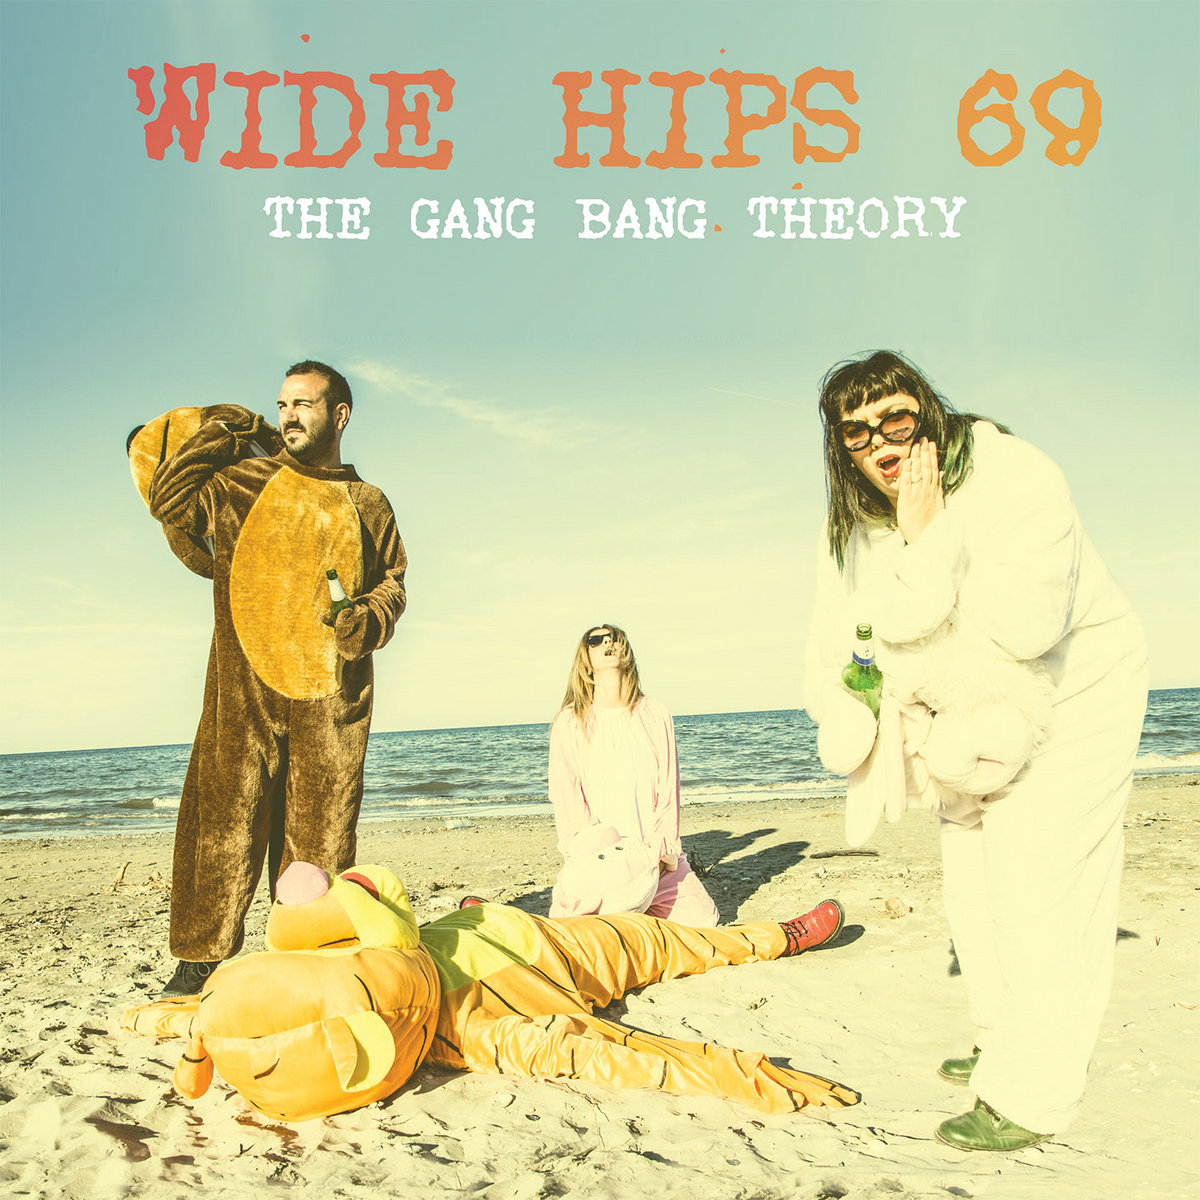 The Gang Bang Theory By Wide Hips 69